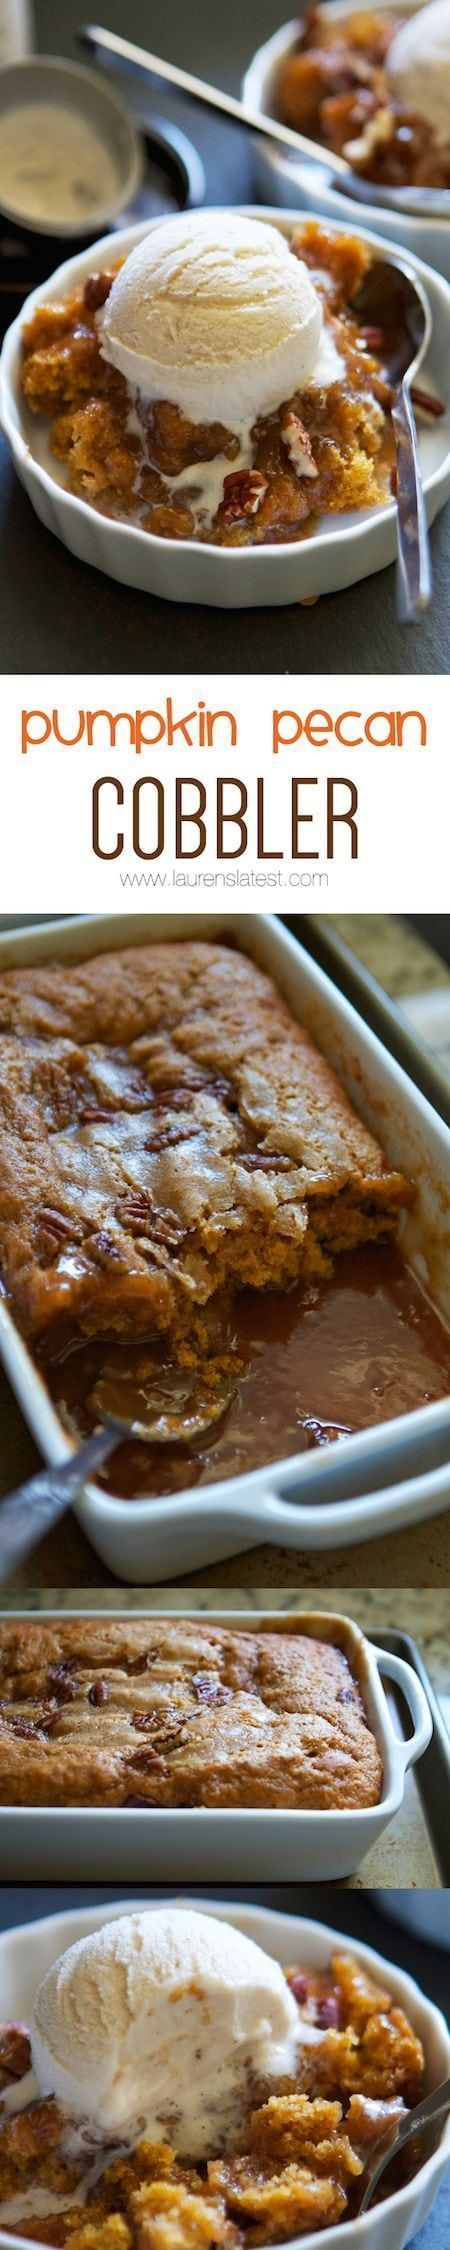 Photo of Pumpkin Pecan Cobbler | Lauren's Latest